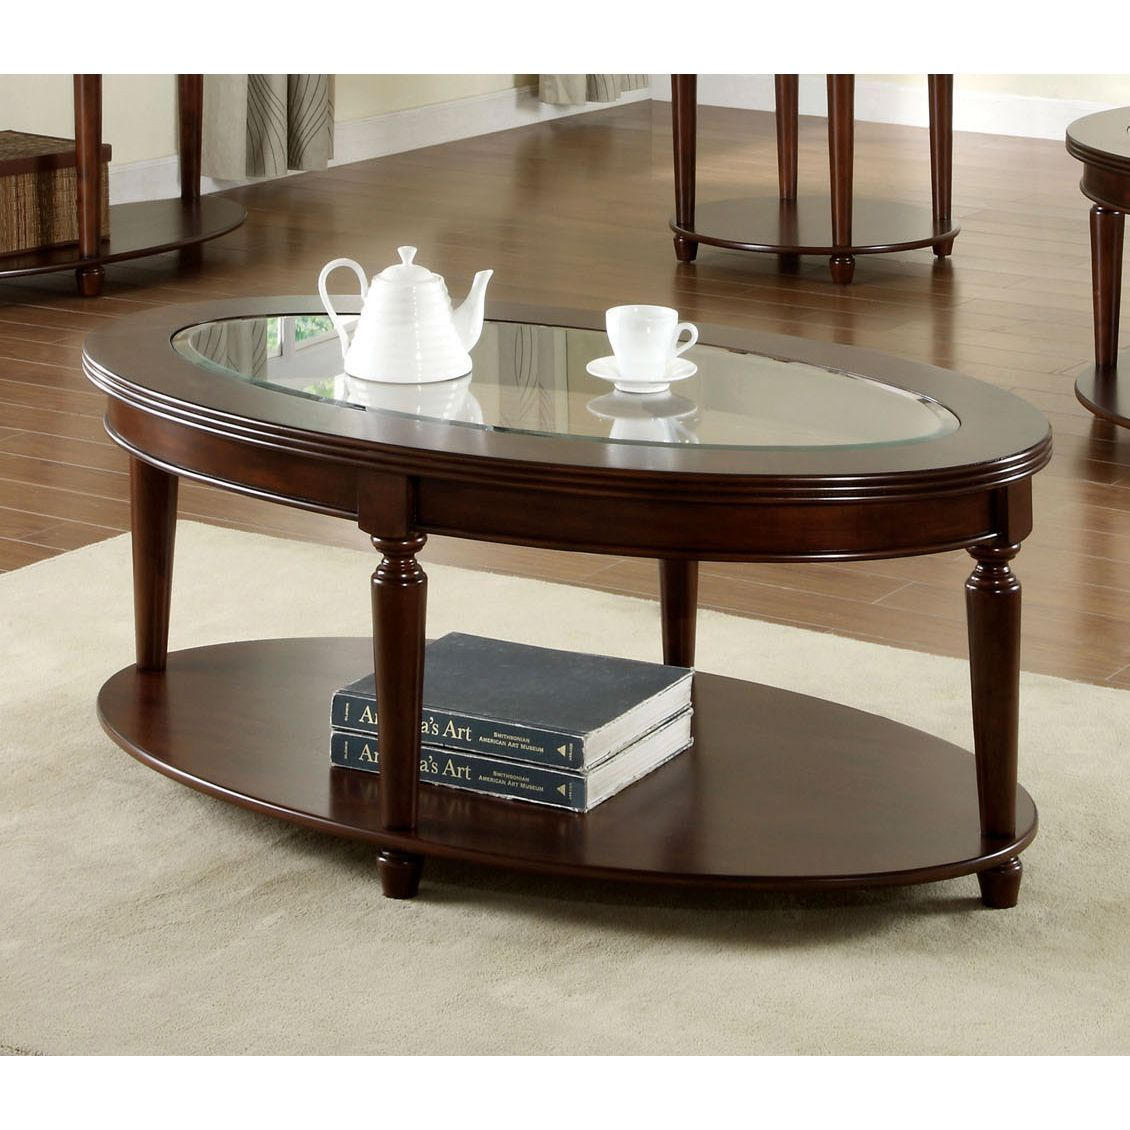 This Beautiful Coffee Table Features An Oval Shape And A Rich Dark Cherry Finish Elegant Turned Legs Ilize Handsome Piece While Supporting The